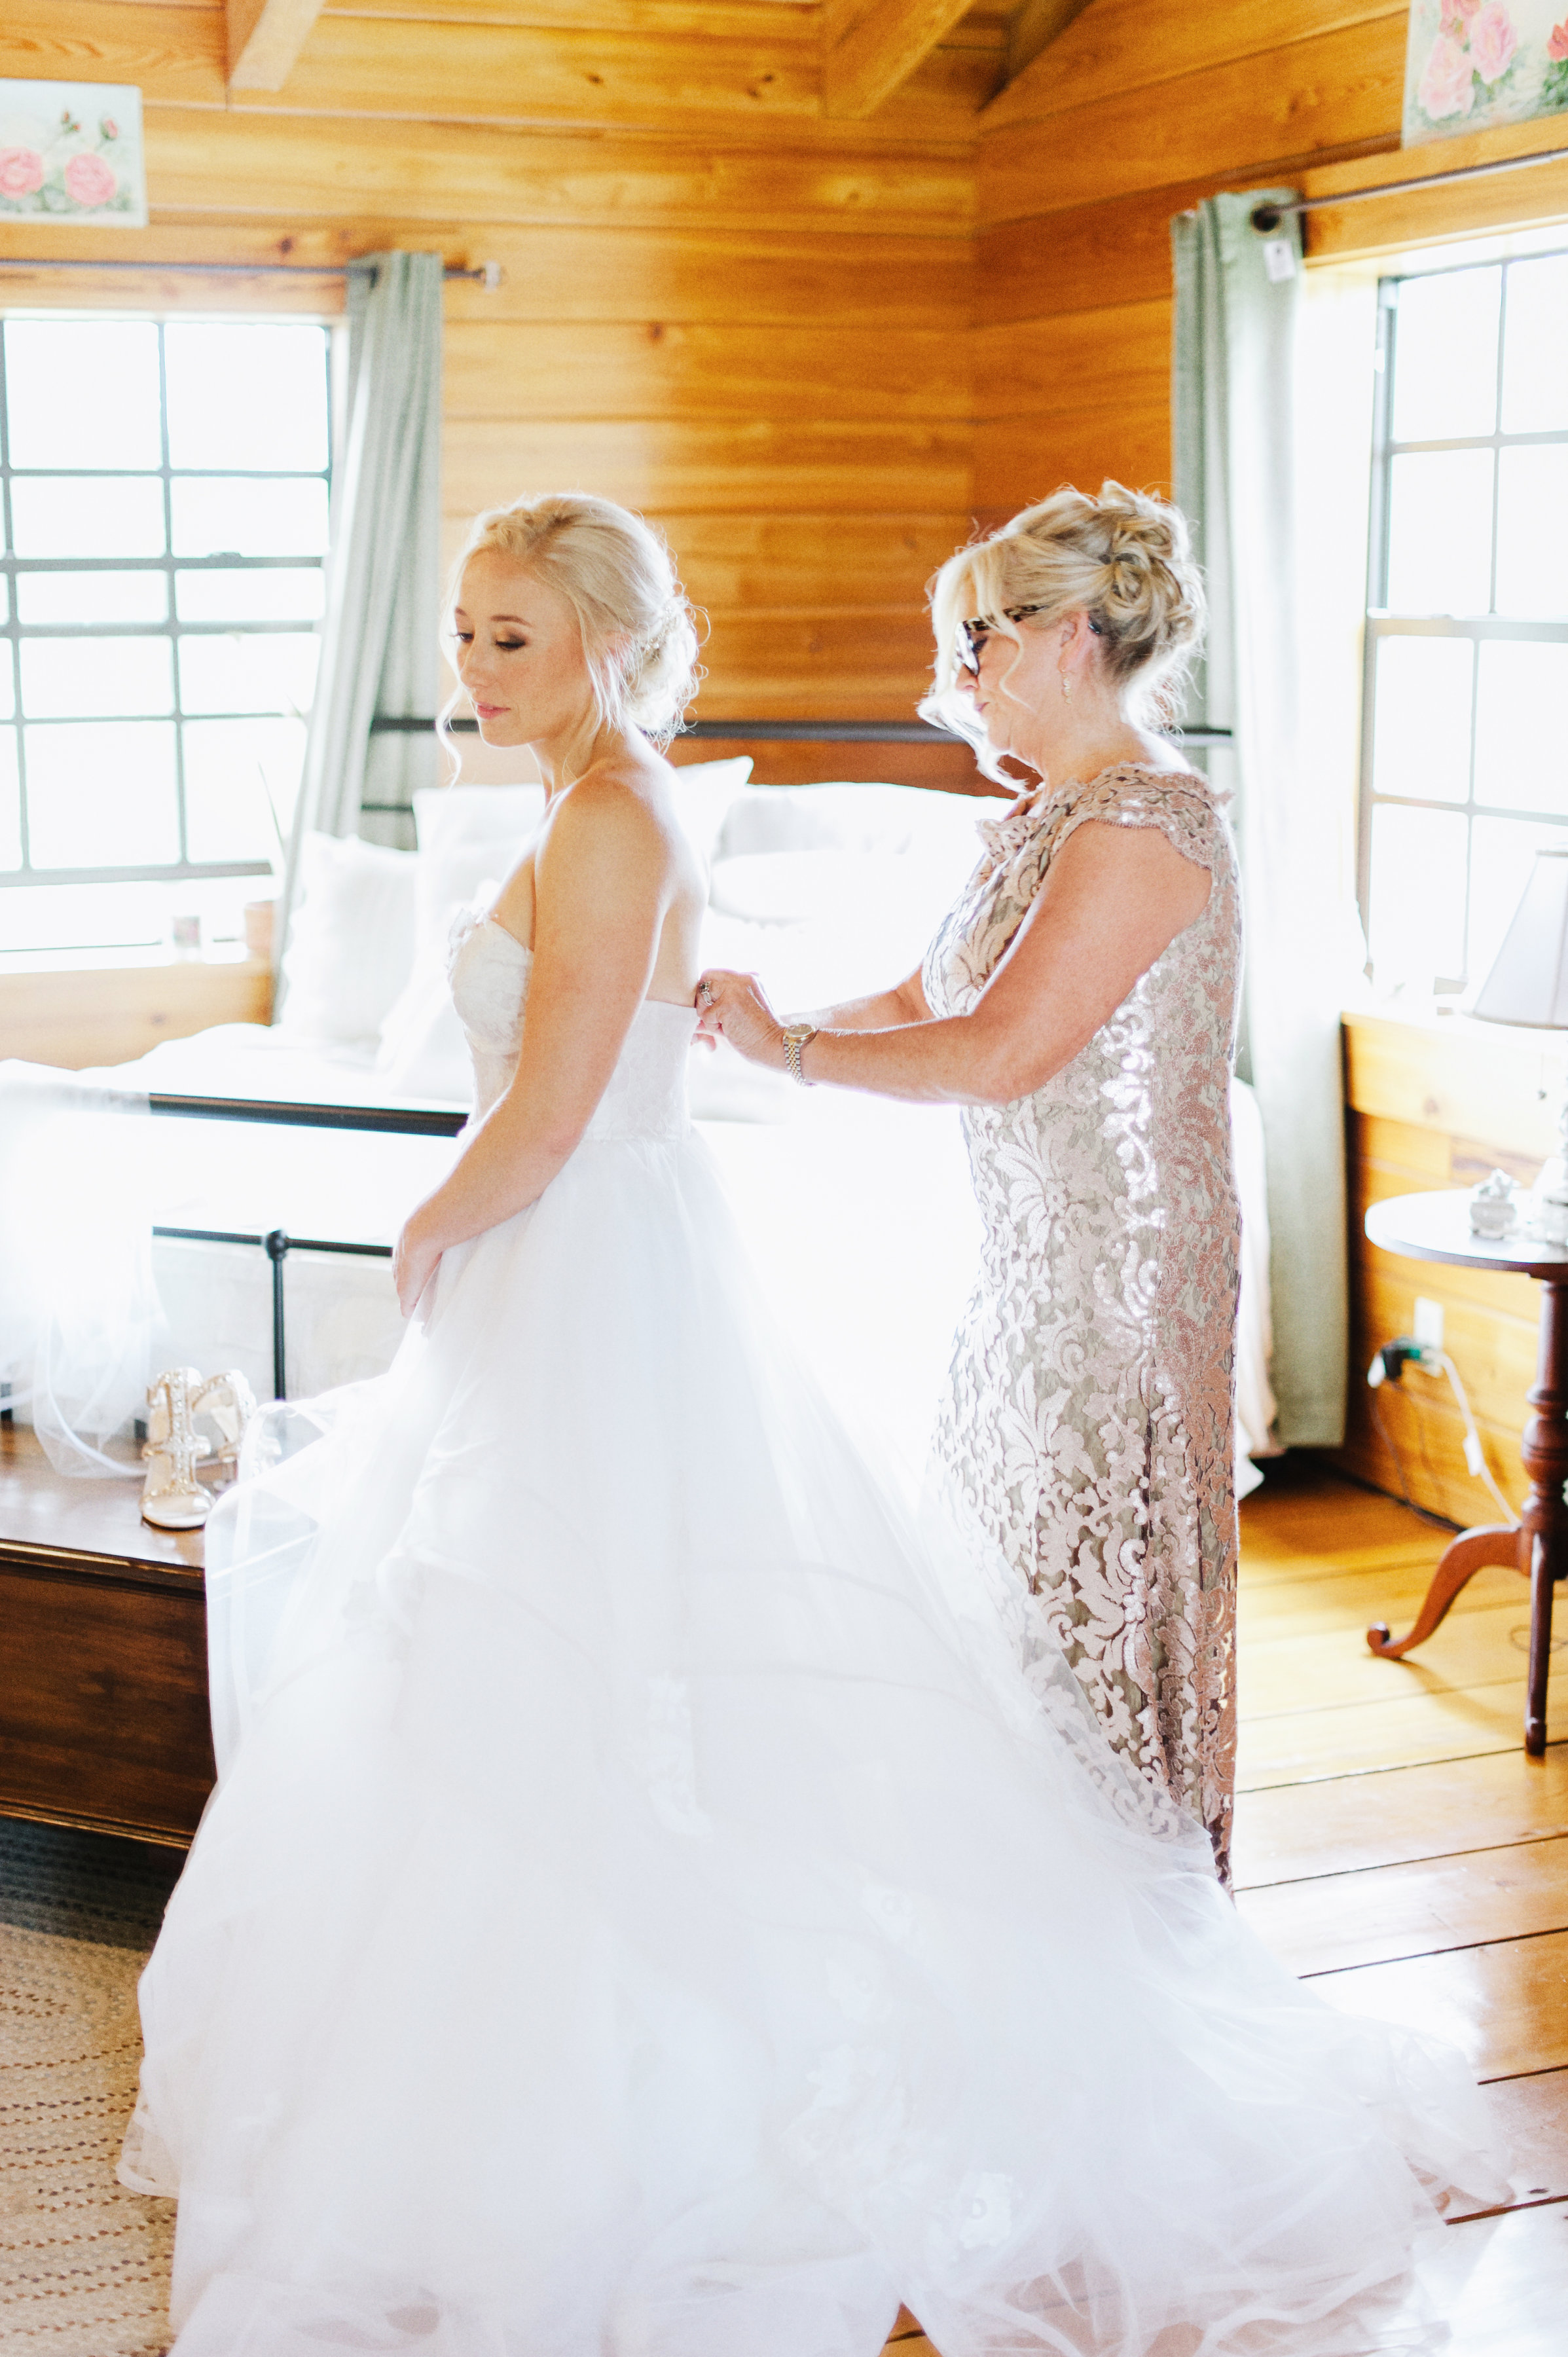 Sweet moments getting ready of bride and her mother